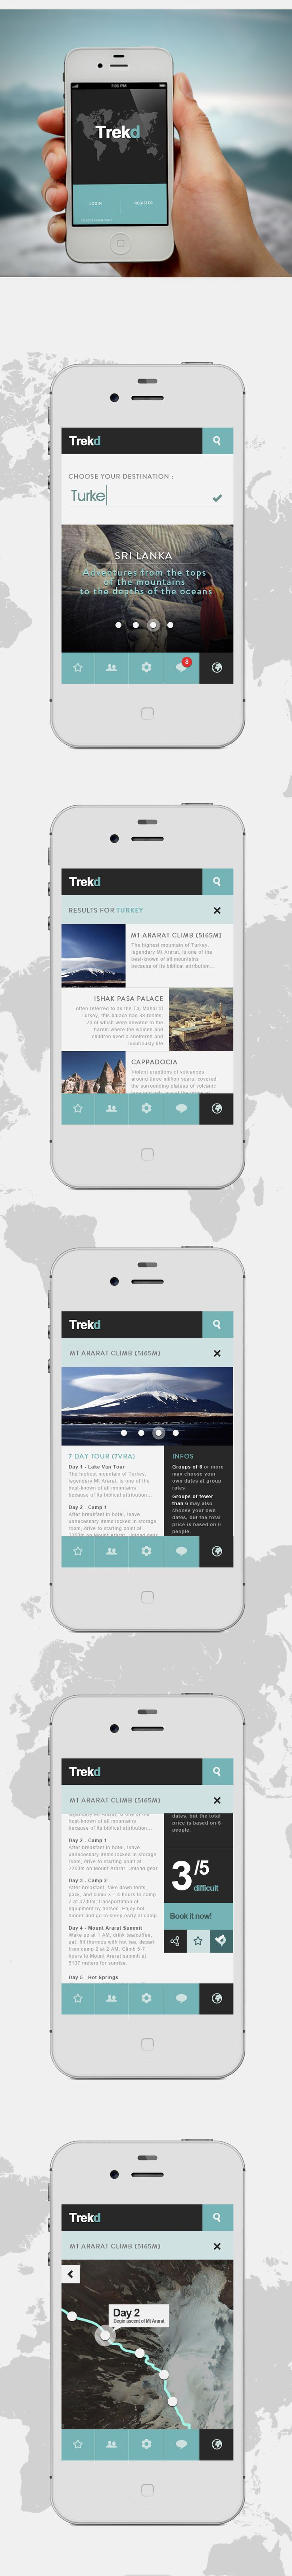 App | Trekd Concept by Thomas Le Corre  I like the black and white and the use of ONE other color. In this scheme. I like turquoise. It seems vintage and aged. The look I am going for.